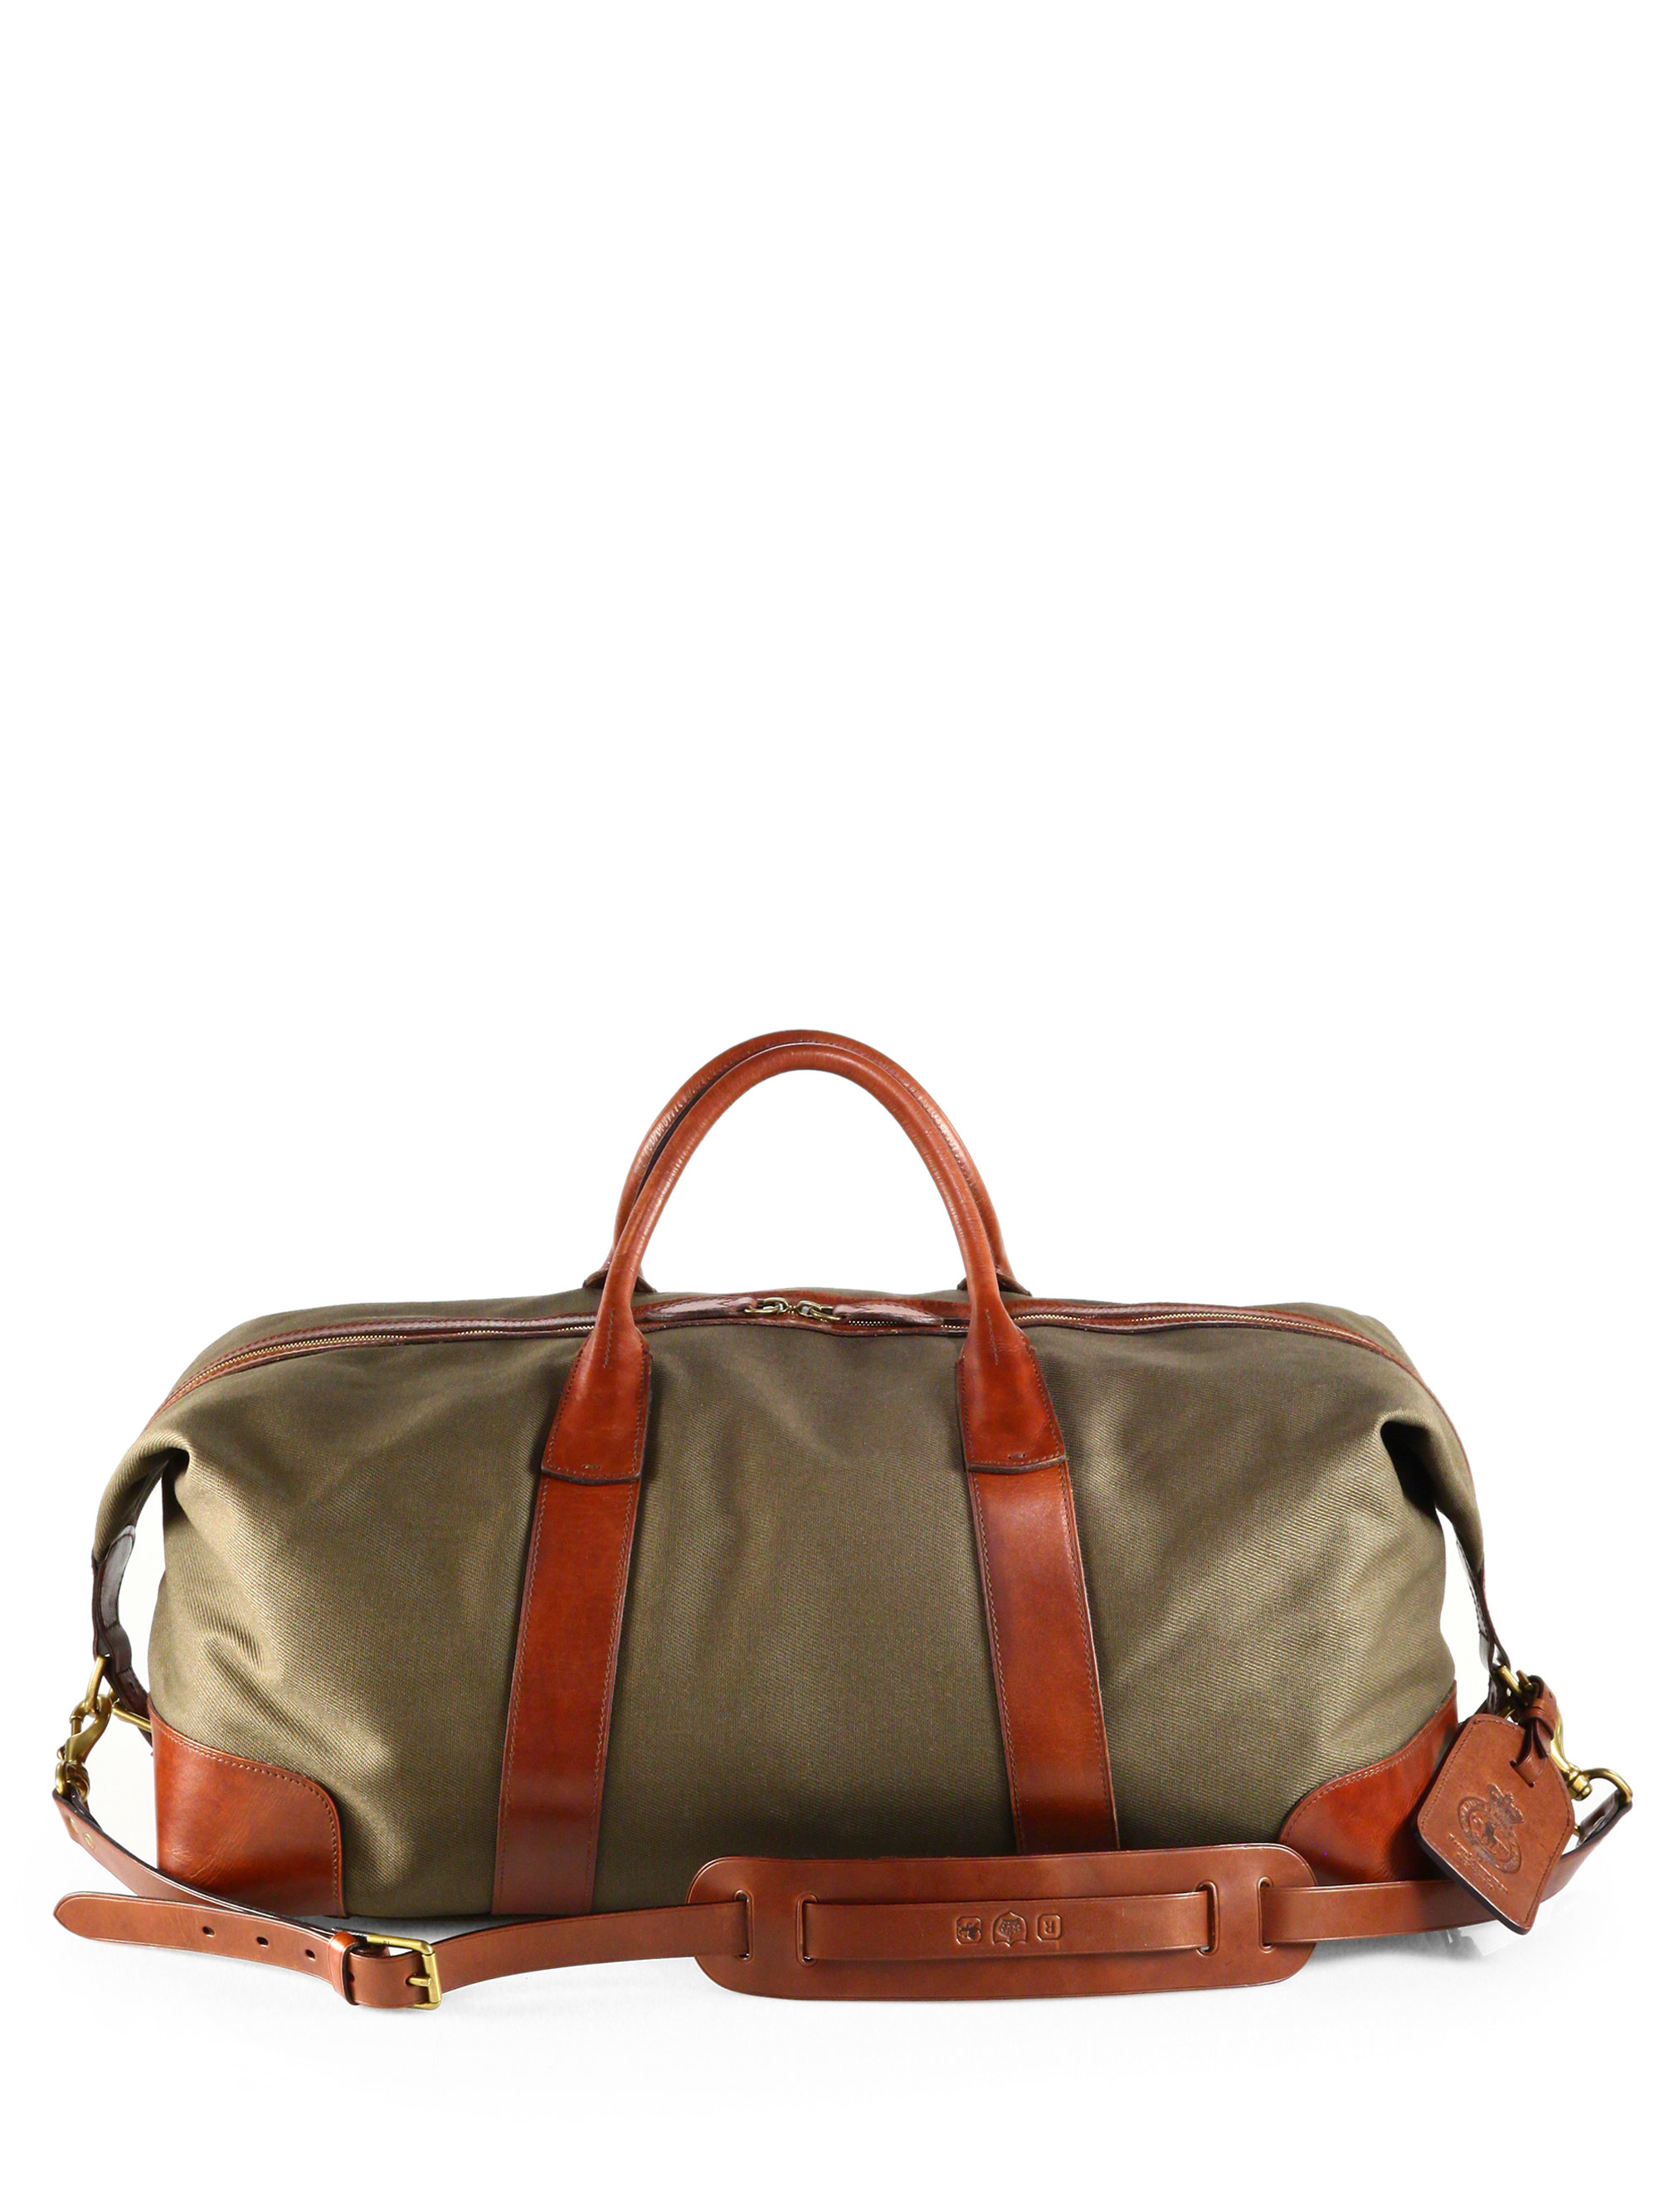 75d415176a Lyst - Polo Ralph Lauren Waxed Twill Duffle Bag in Green for Men